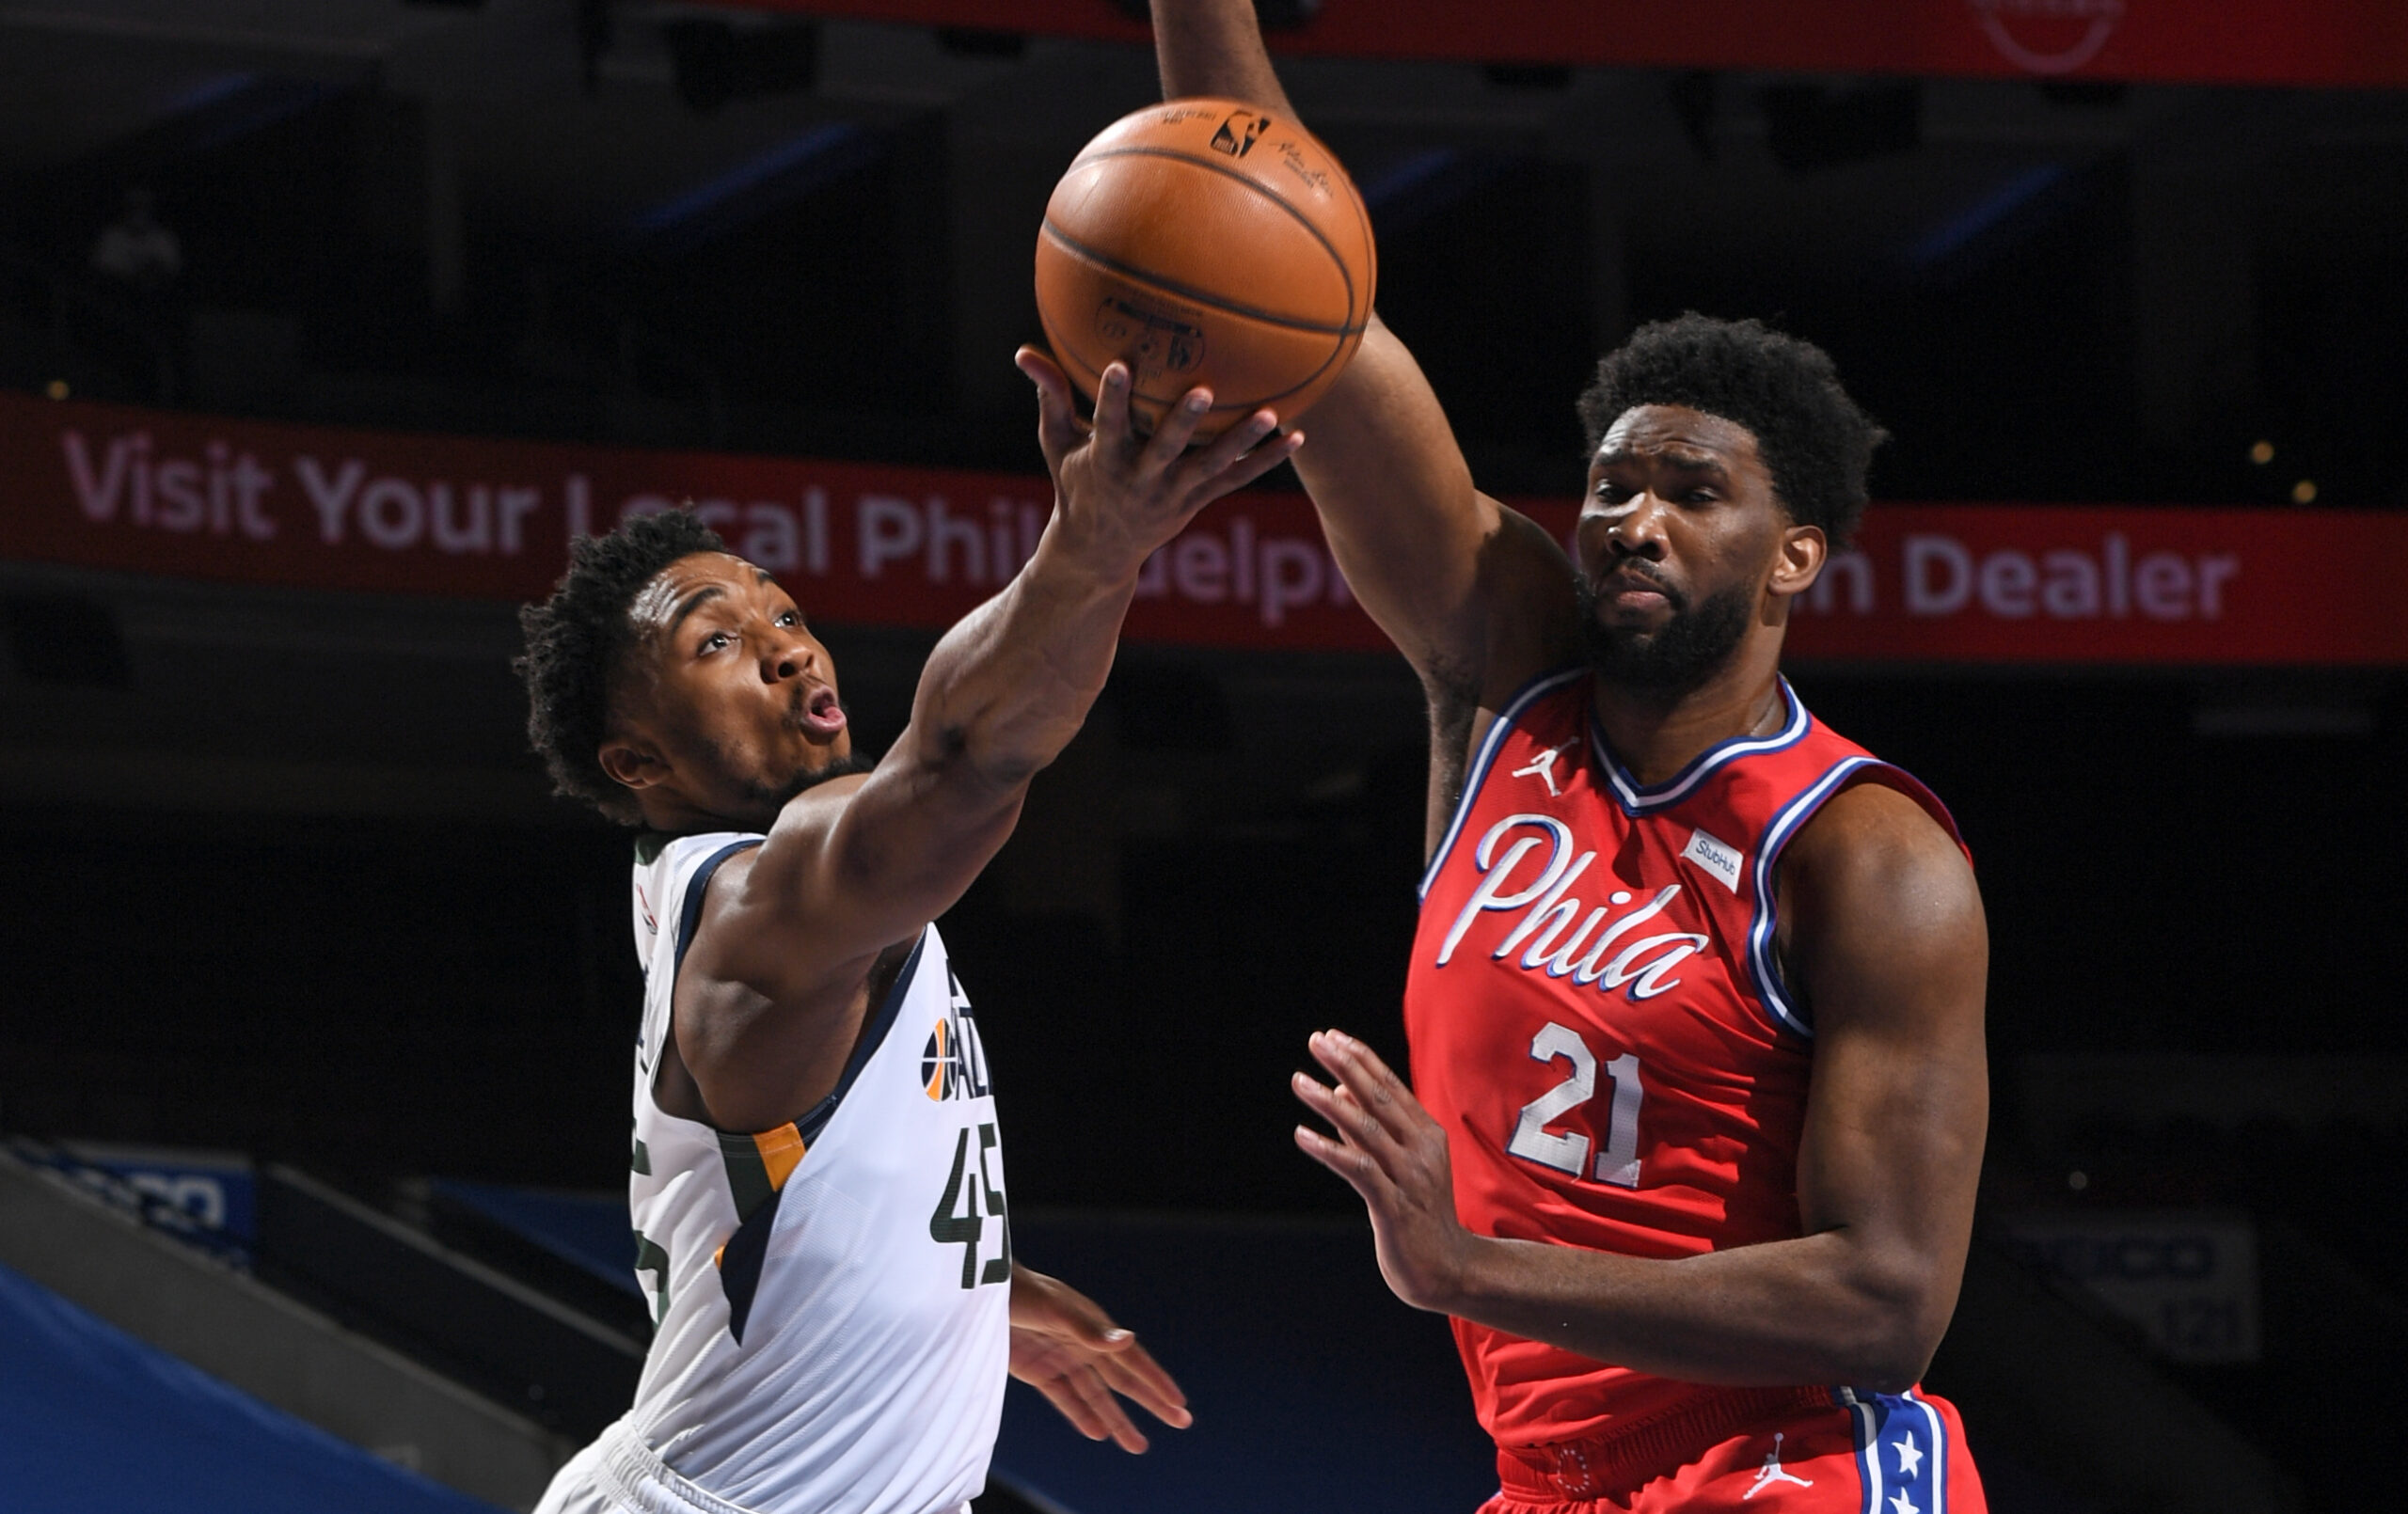 Jazz, 76ers out to prove this year is different